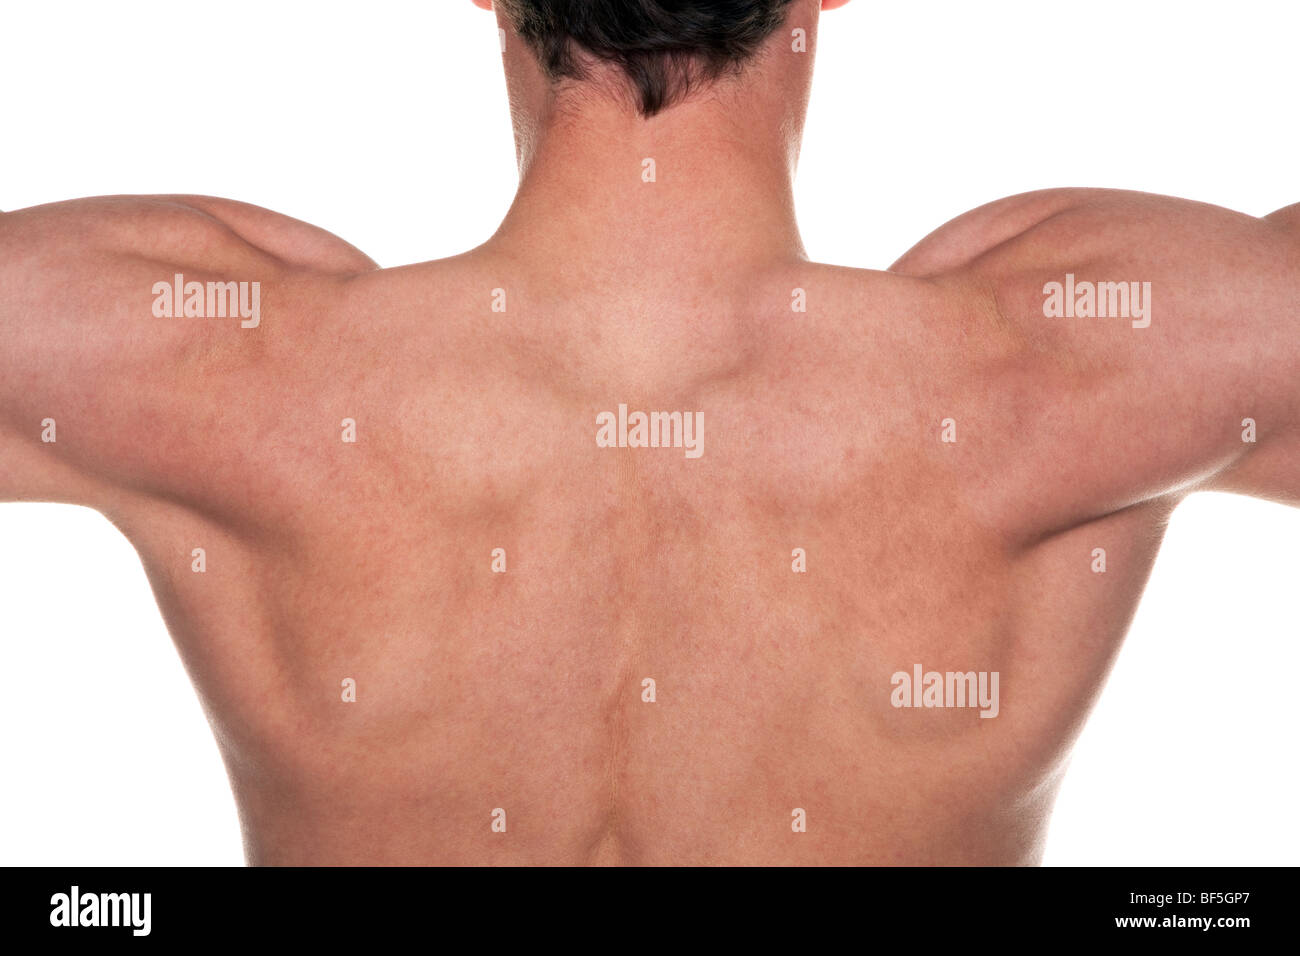 A mans back with his muscles flexed. - Stock Image